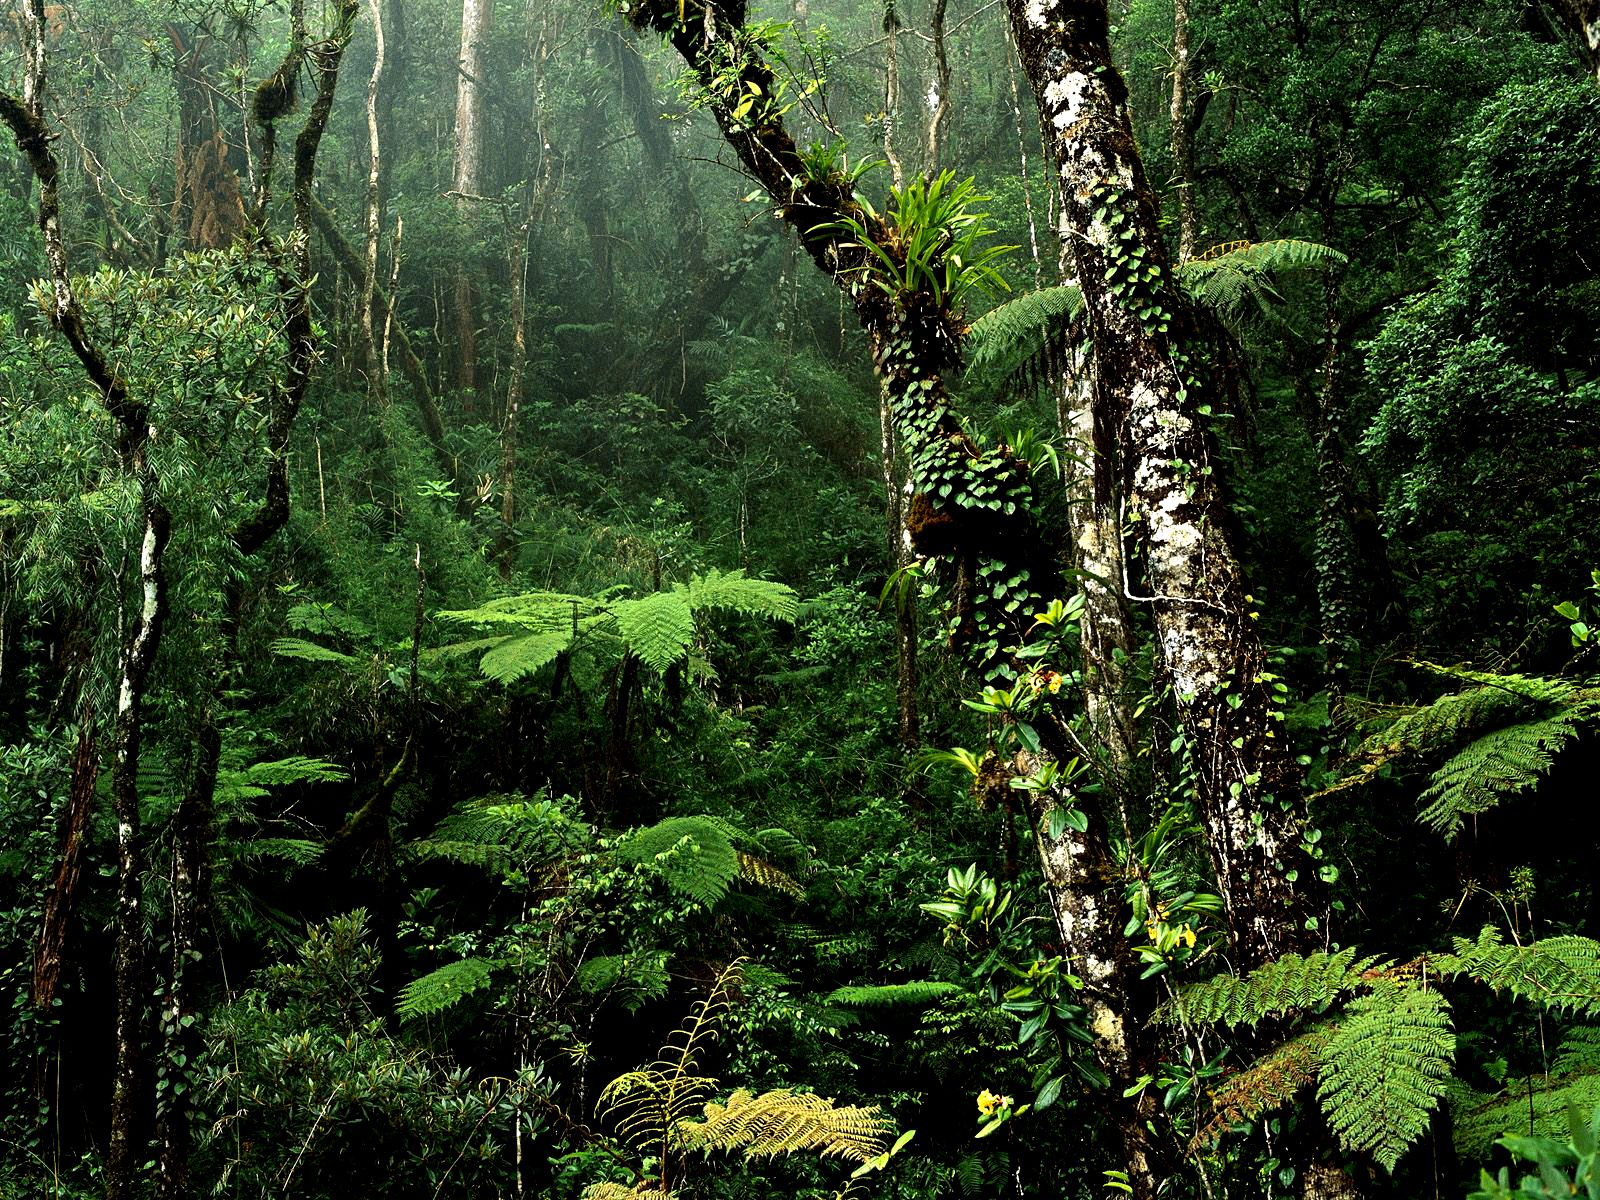 Did you know that the Borneo rainforest is 130 million years old, making it the oldest rainforest in the world? There are about 15,000 species of flowering plants with 3,000 species of trees (267 species are dipterocarps), 221 species of terrestrial mammals and 420 species of resident birds in Borneo.    (Photo is Montane Rainforest, Mount Kinabalu National Park, Borneo)